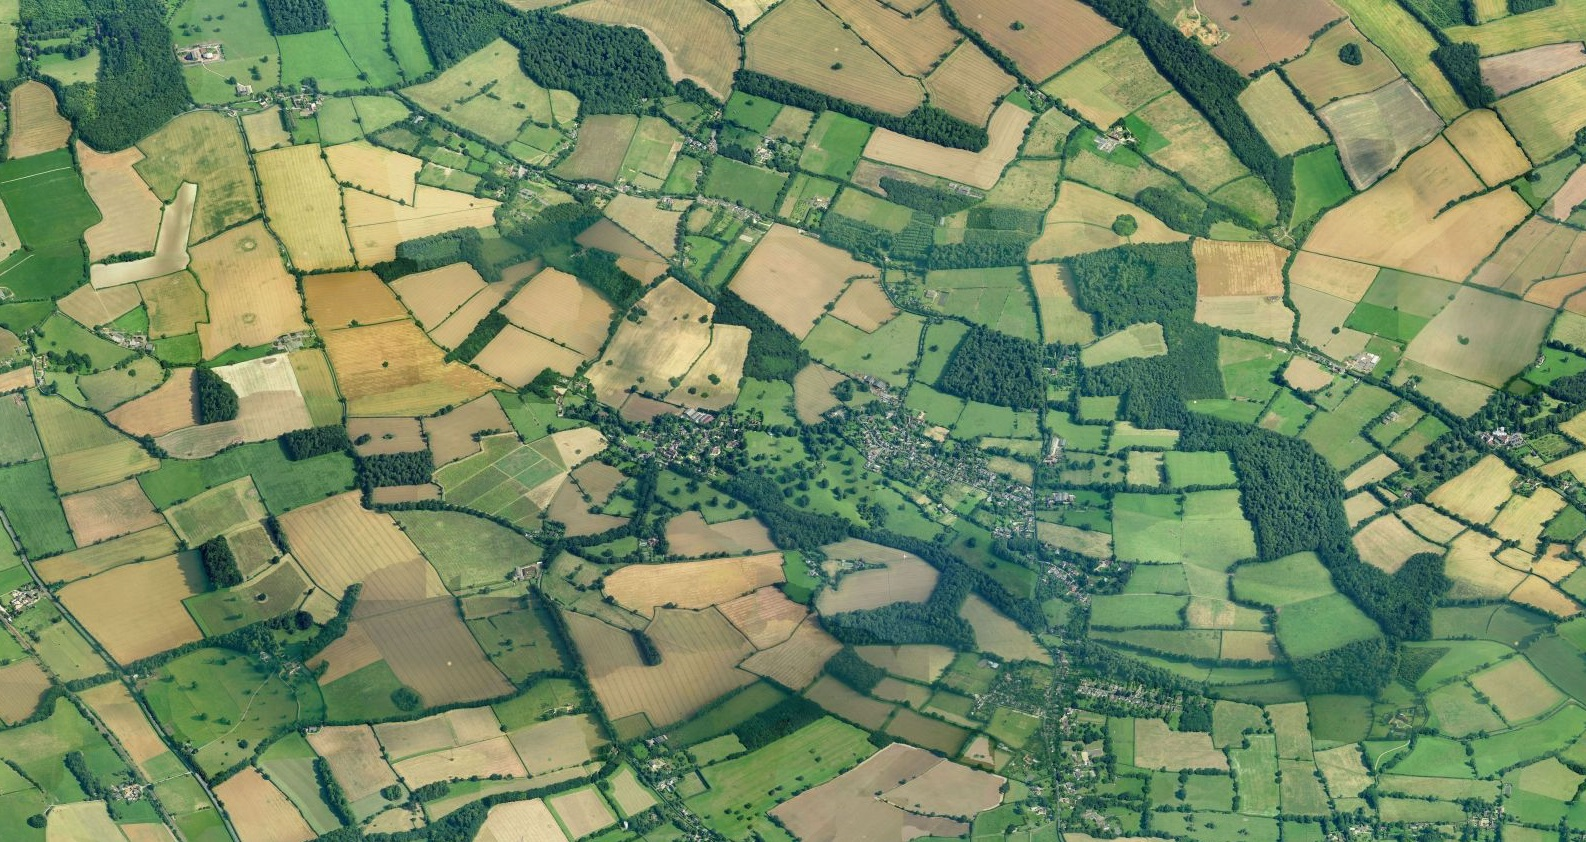 Aerial view of The Parish, a chequerboard of fields and woodland.